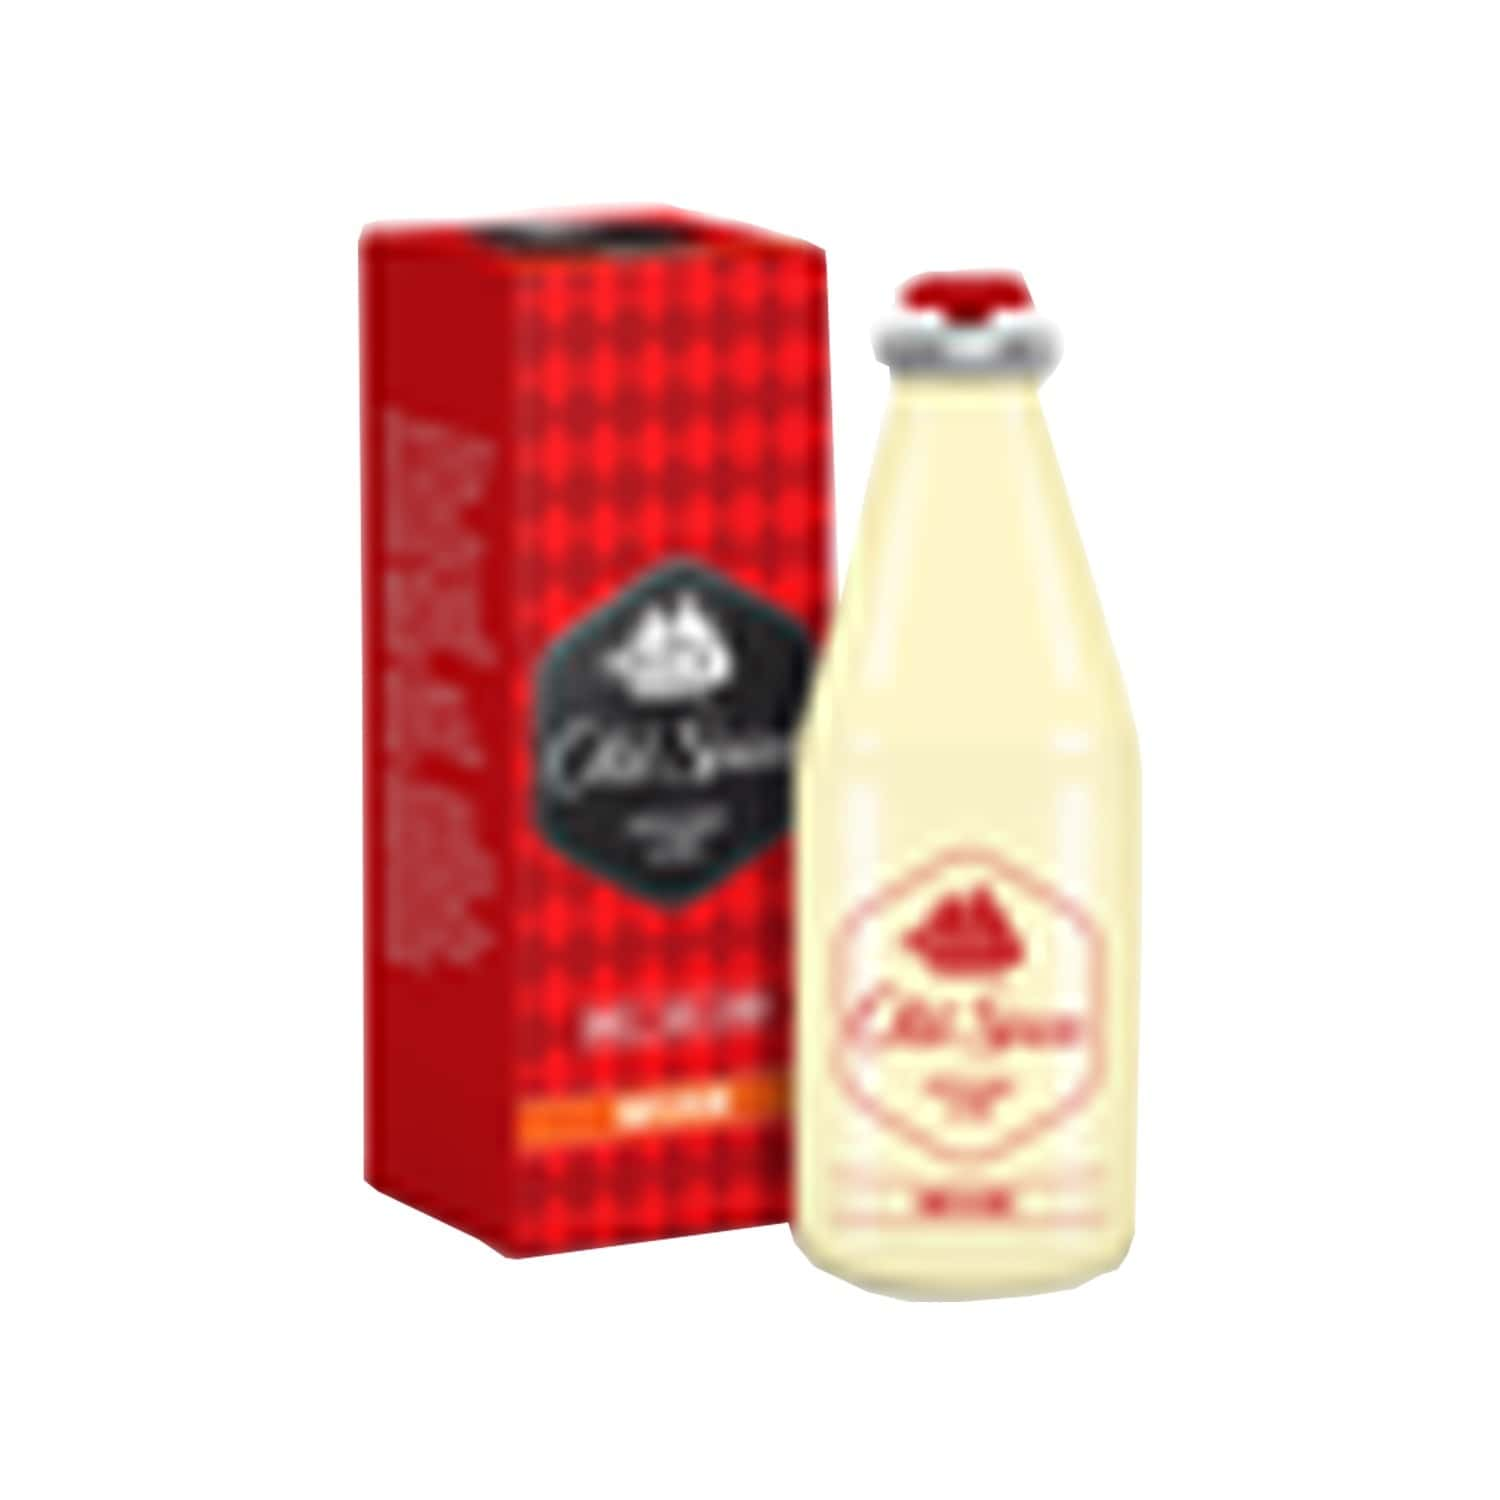 Old Spice After Shave Lotion (musk) - 50ml